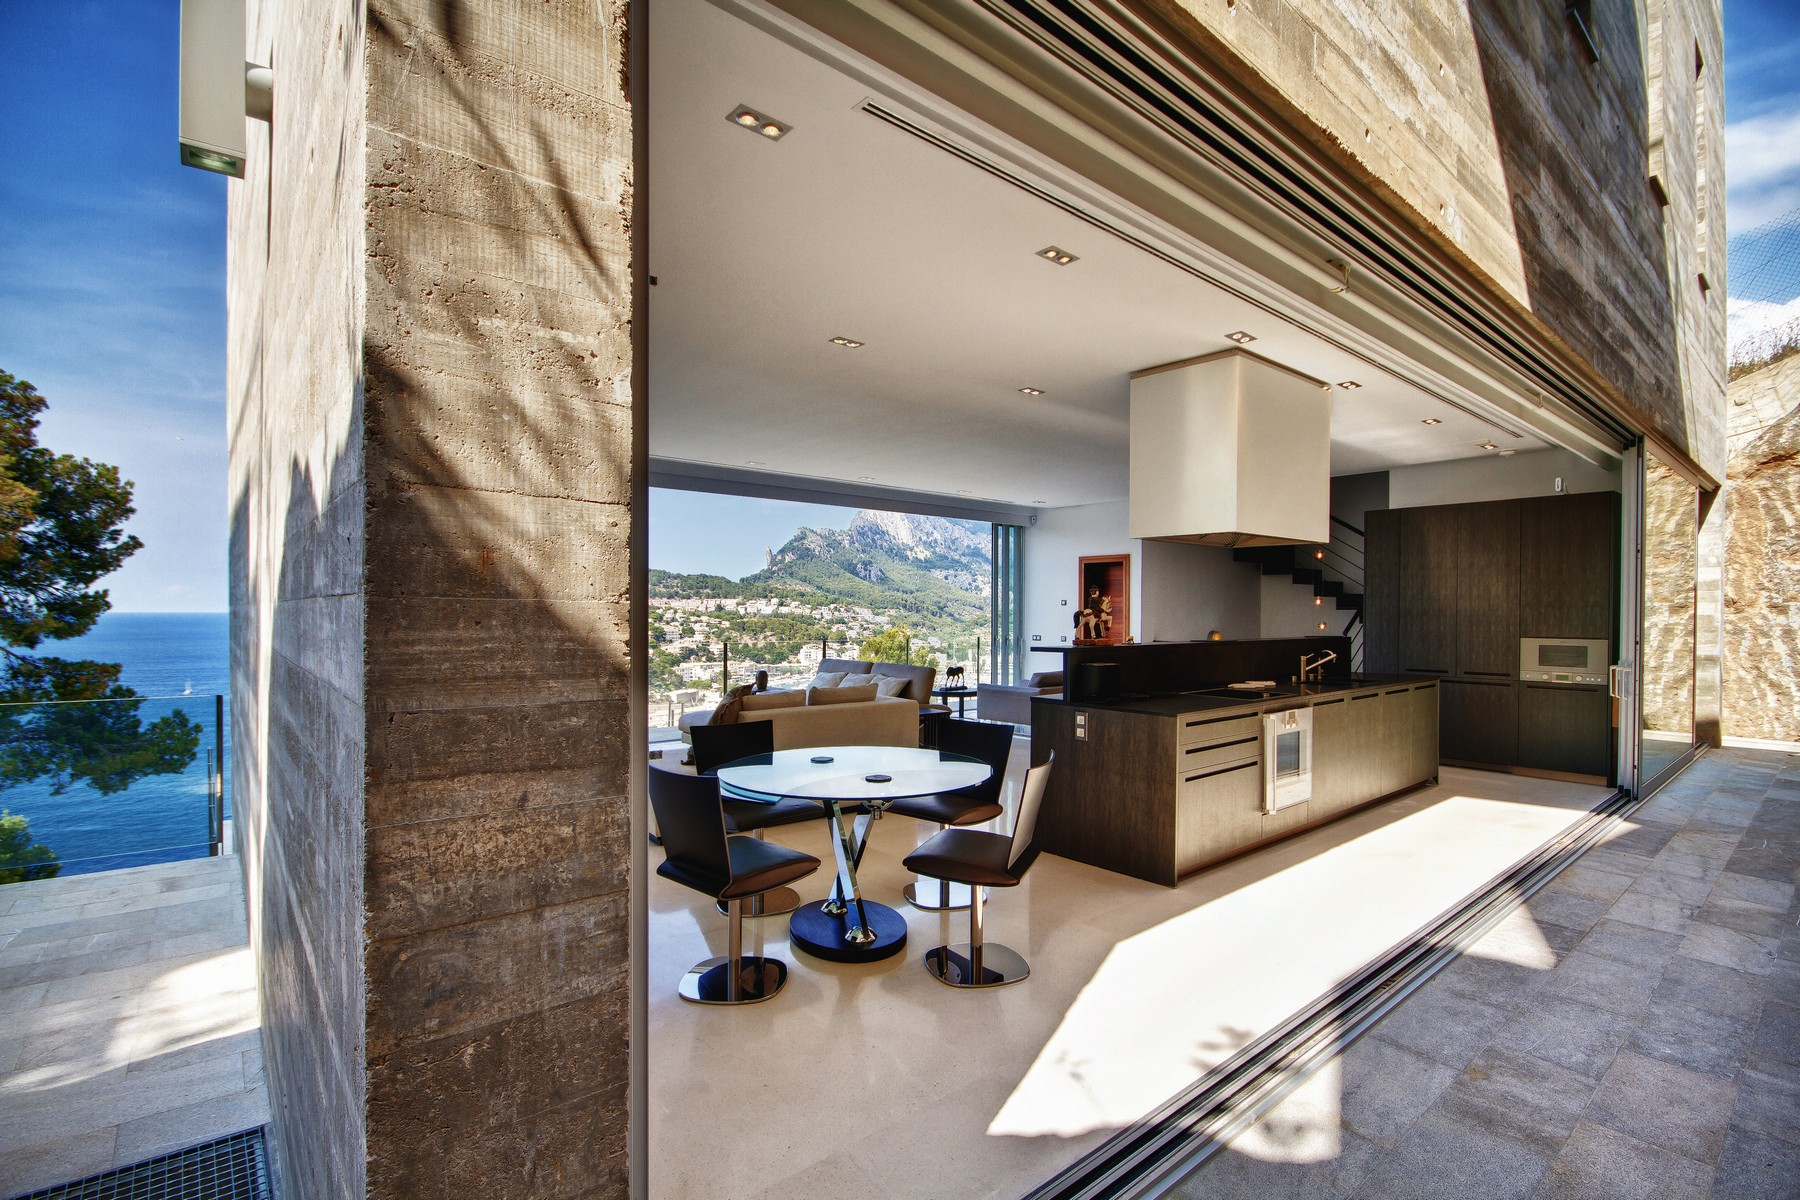 Single Family Home for Sale at Modern villa in Puerto Soller with superb views Soller, Mallorca, 07179 Spain